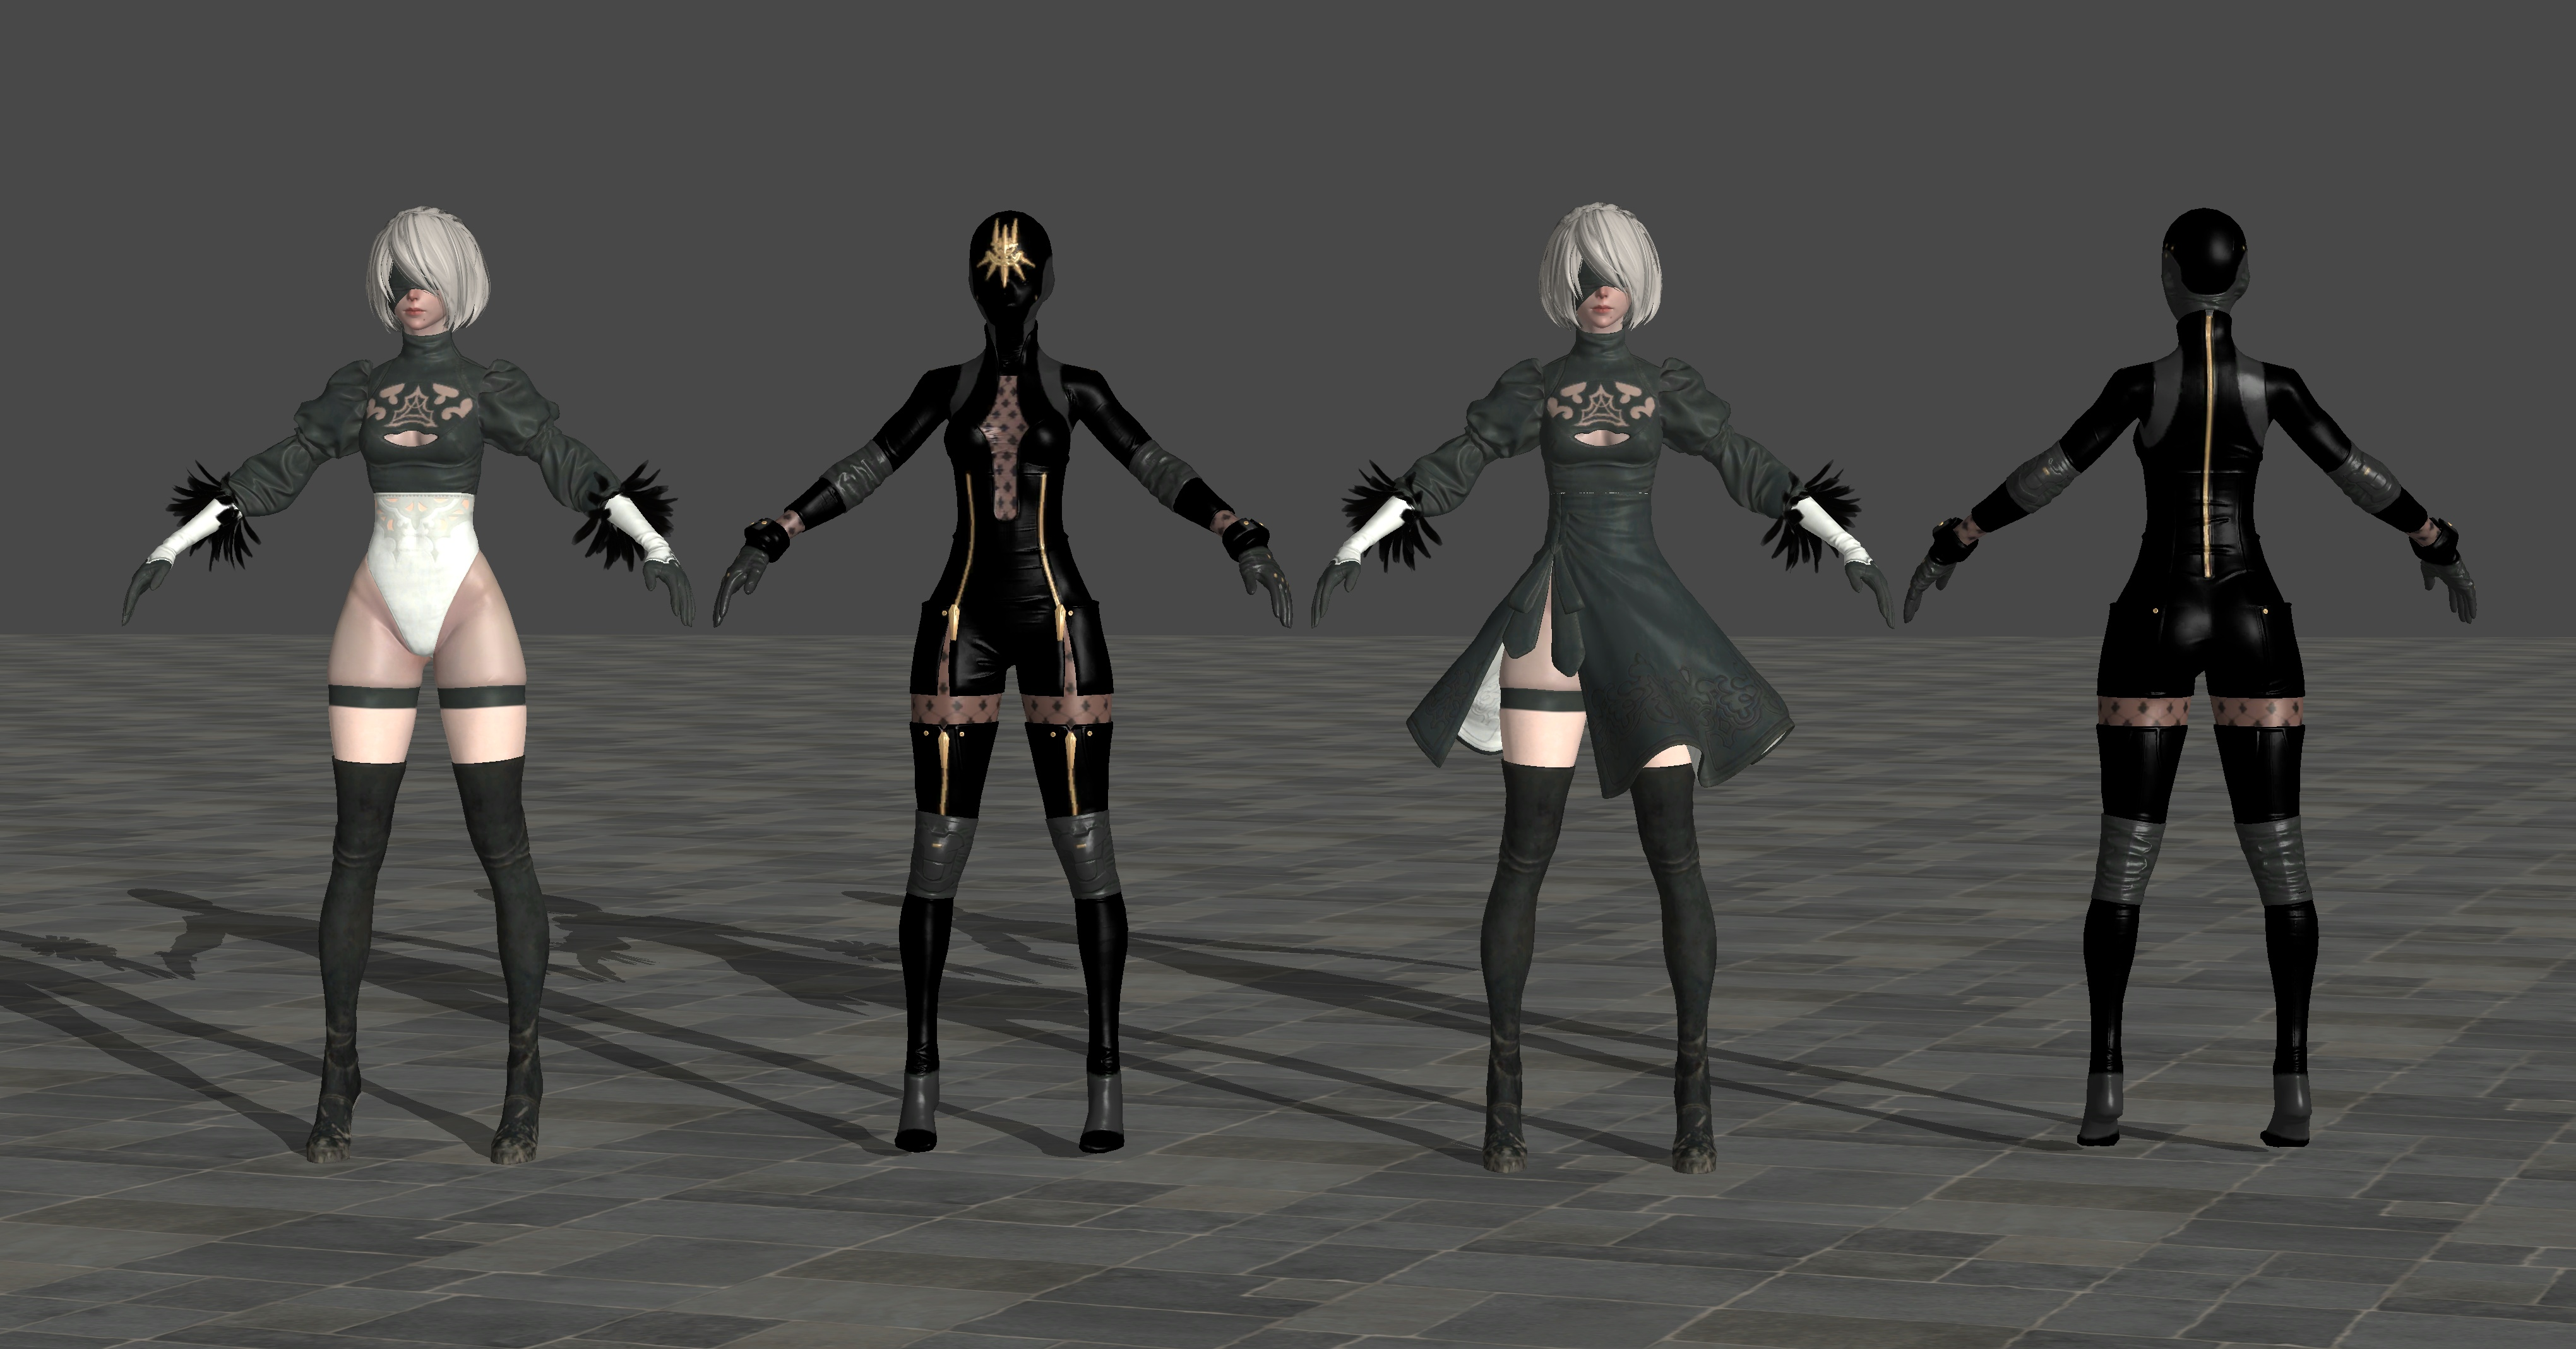 Character Design Nier Automata : B nier automata by theforgottensaint on deviantart